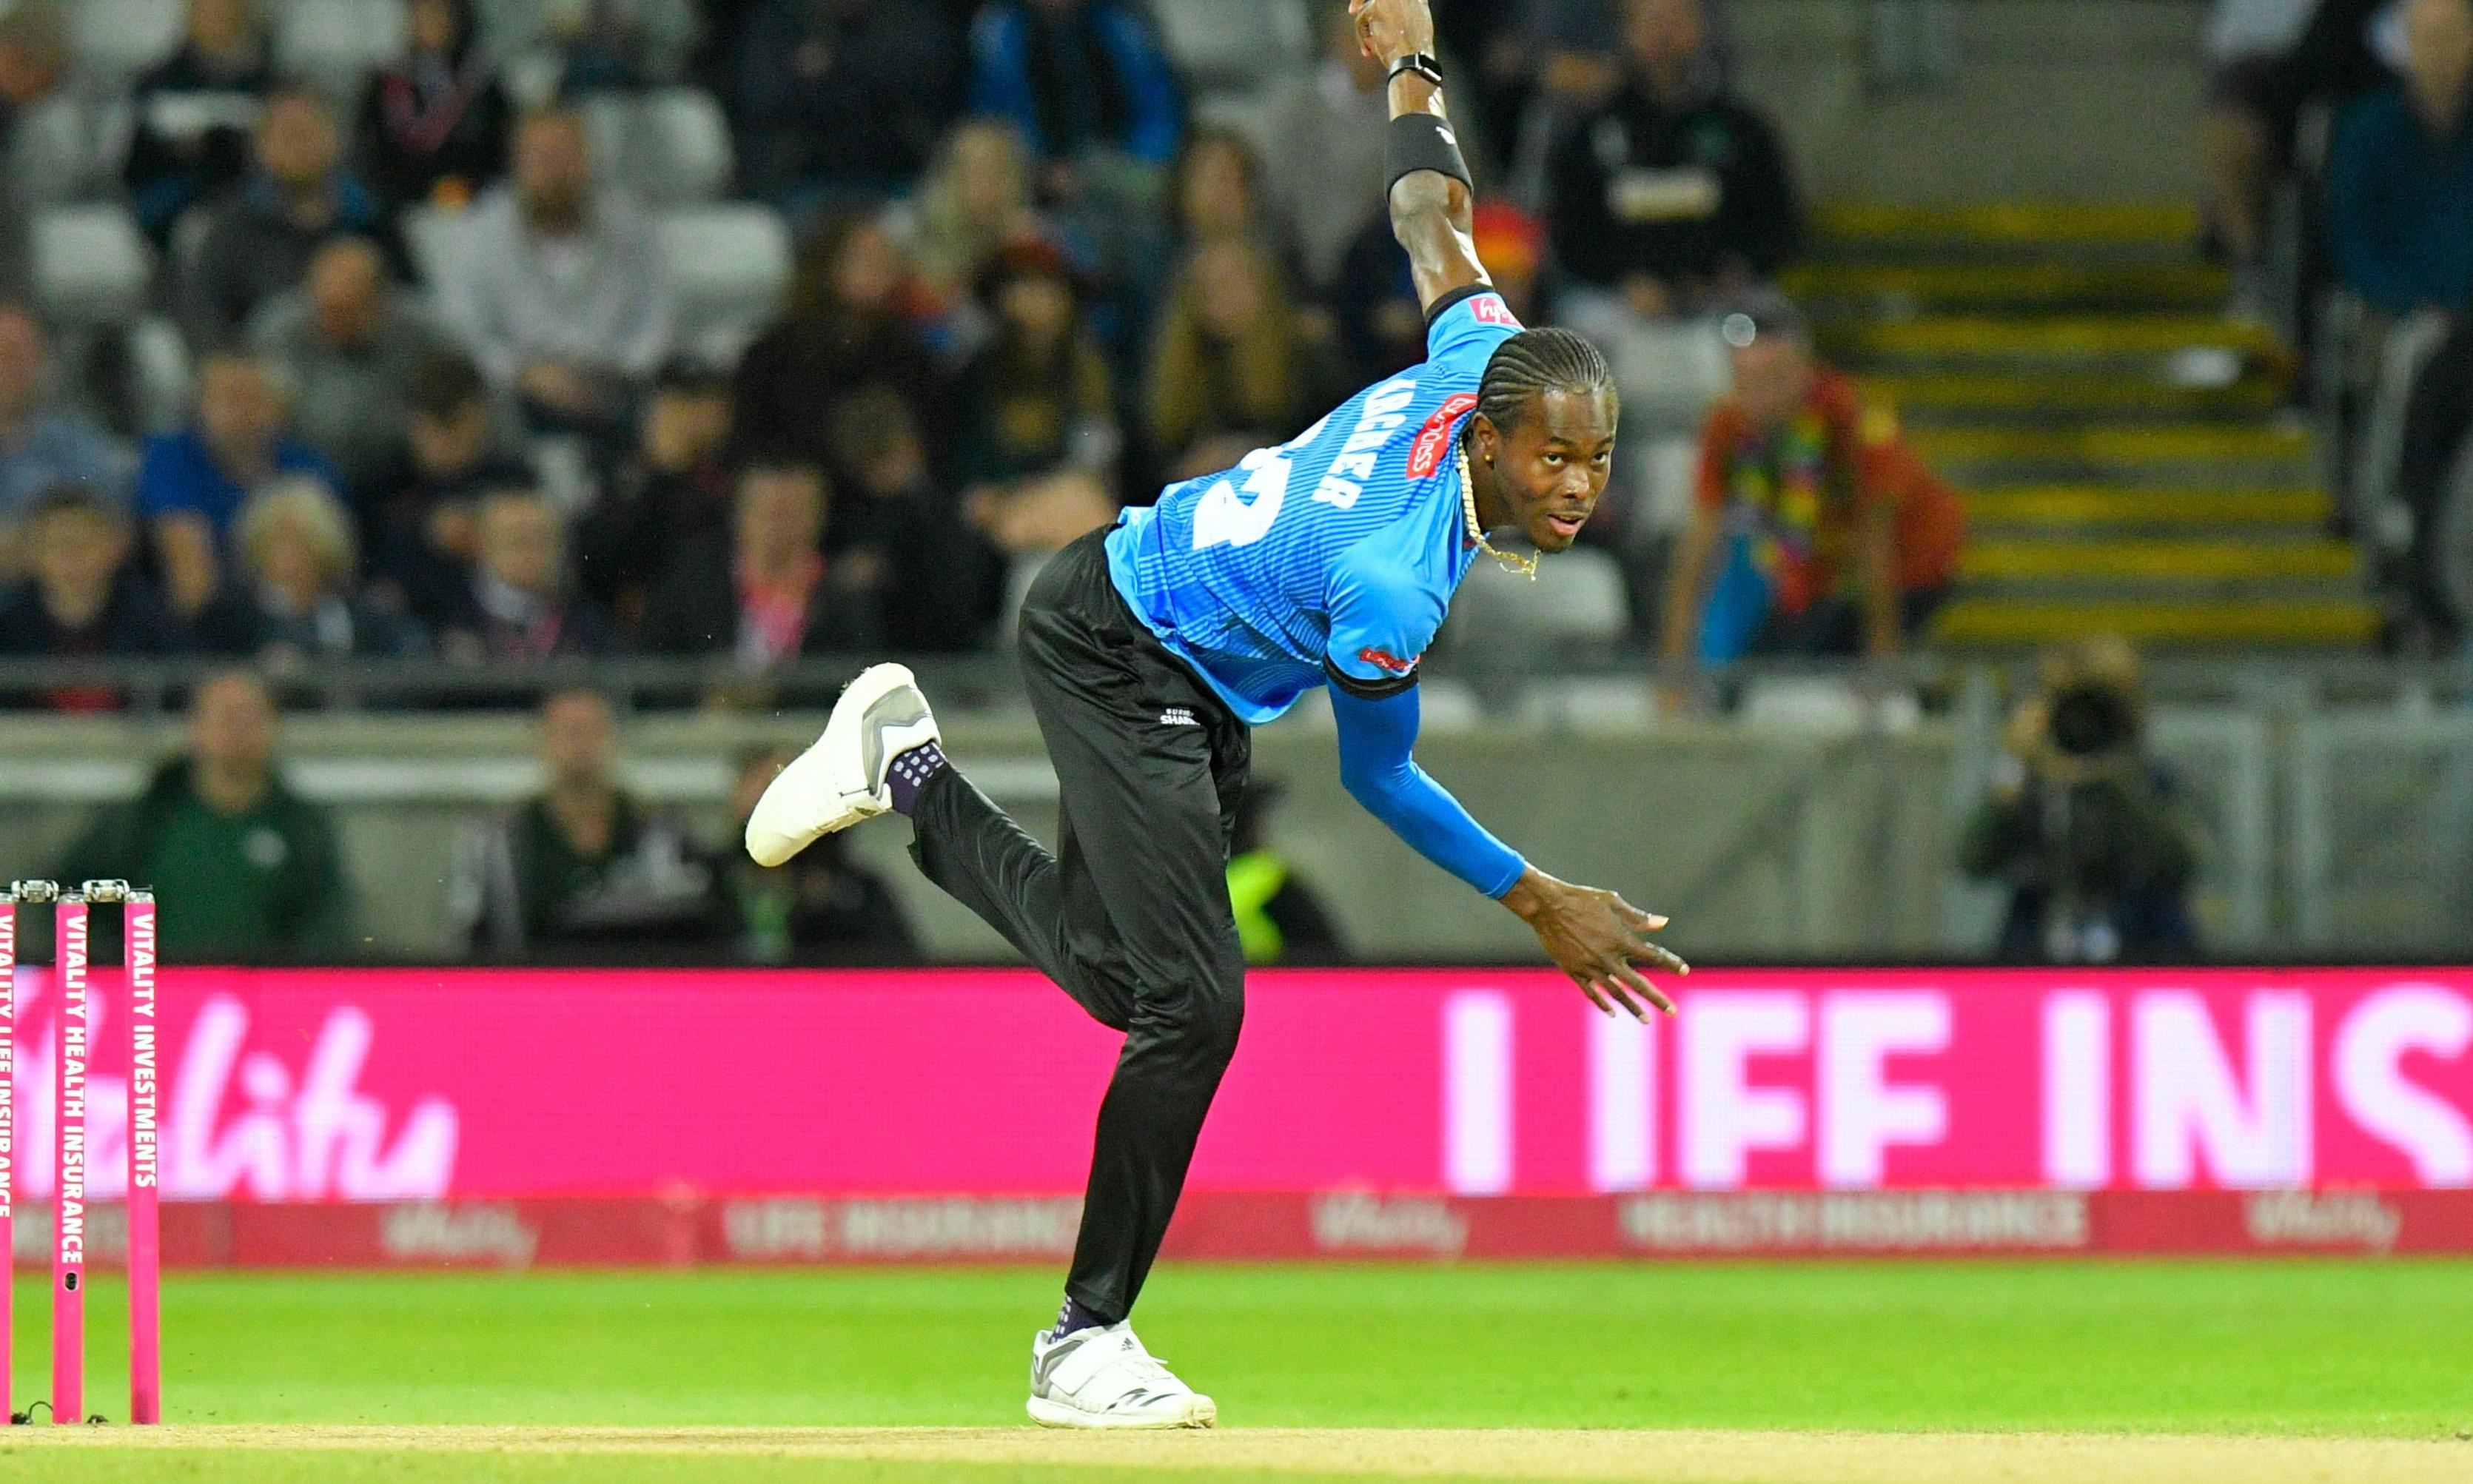 Sussex will prosper with or without Jofra Archer, says Jason Gillespie